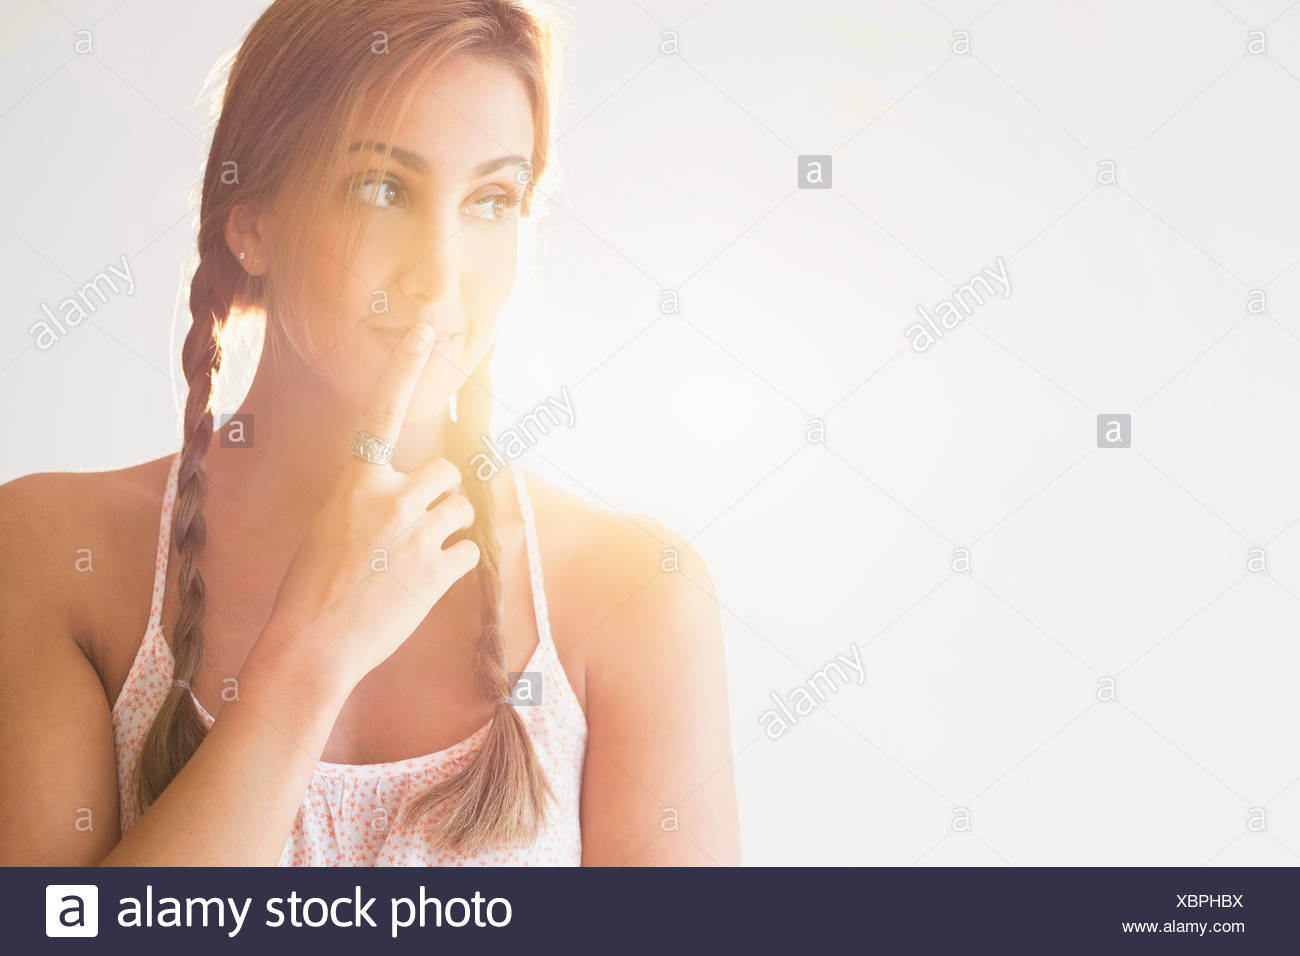 Portrait of young woman in studio Photo Stock